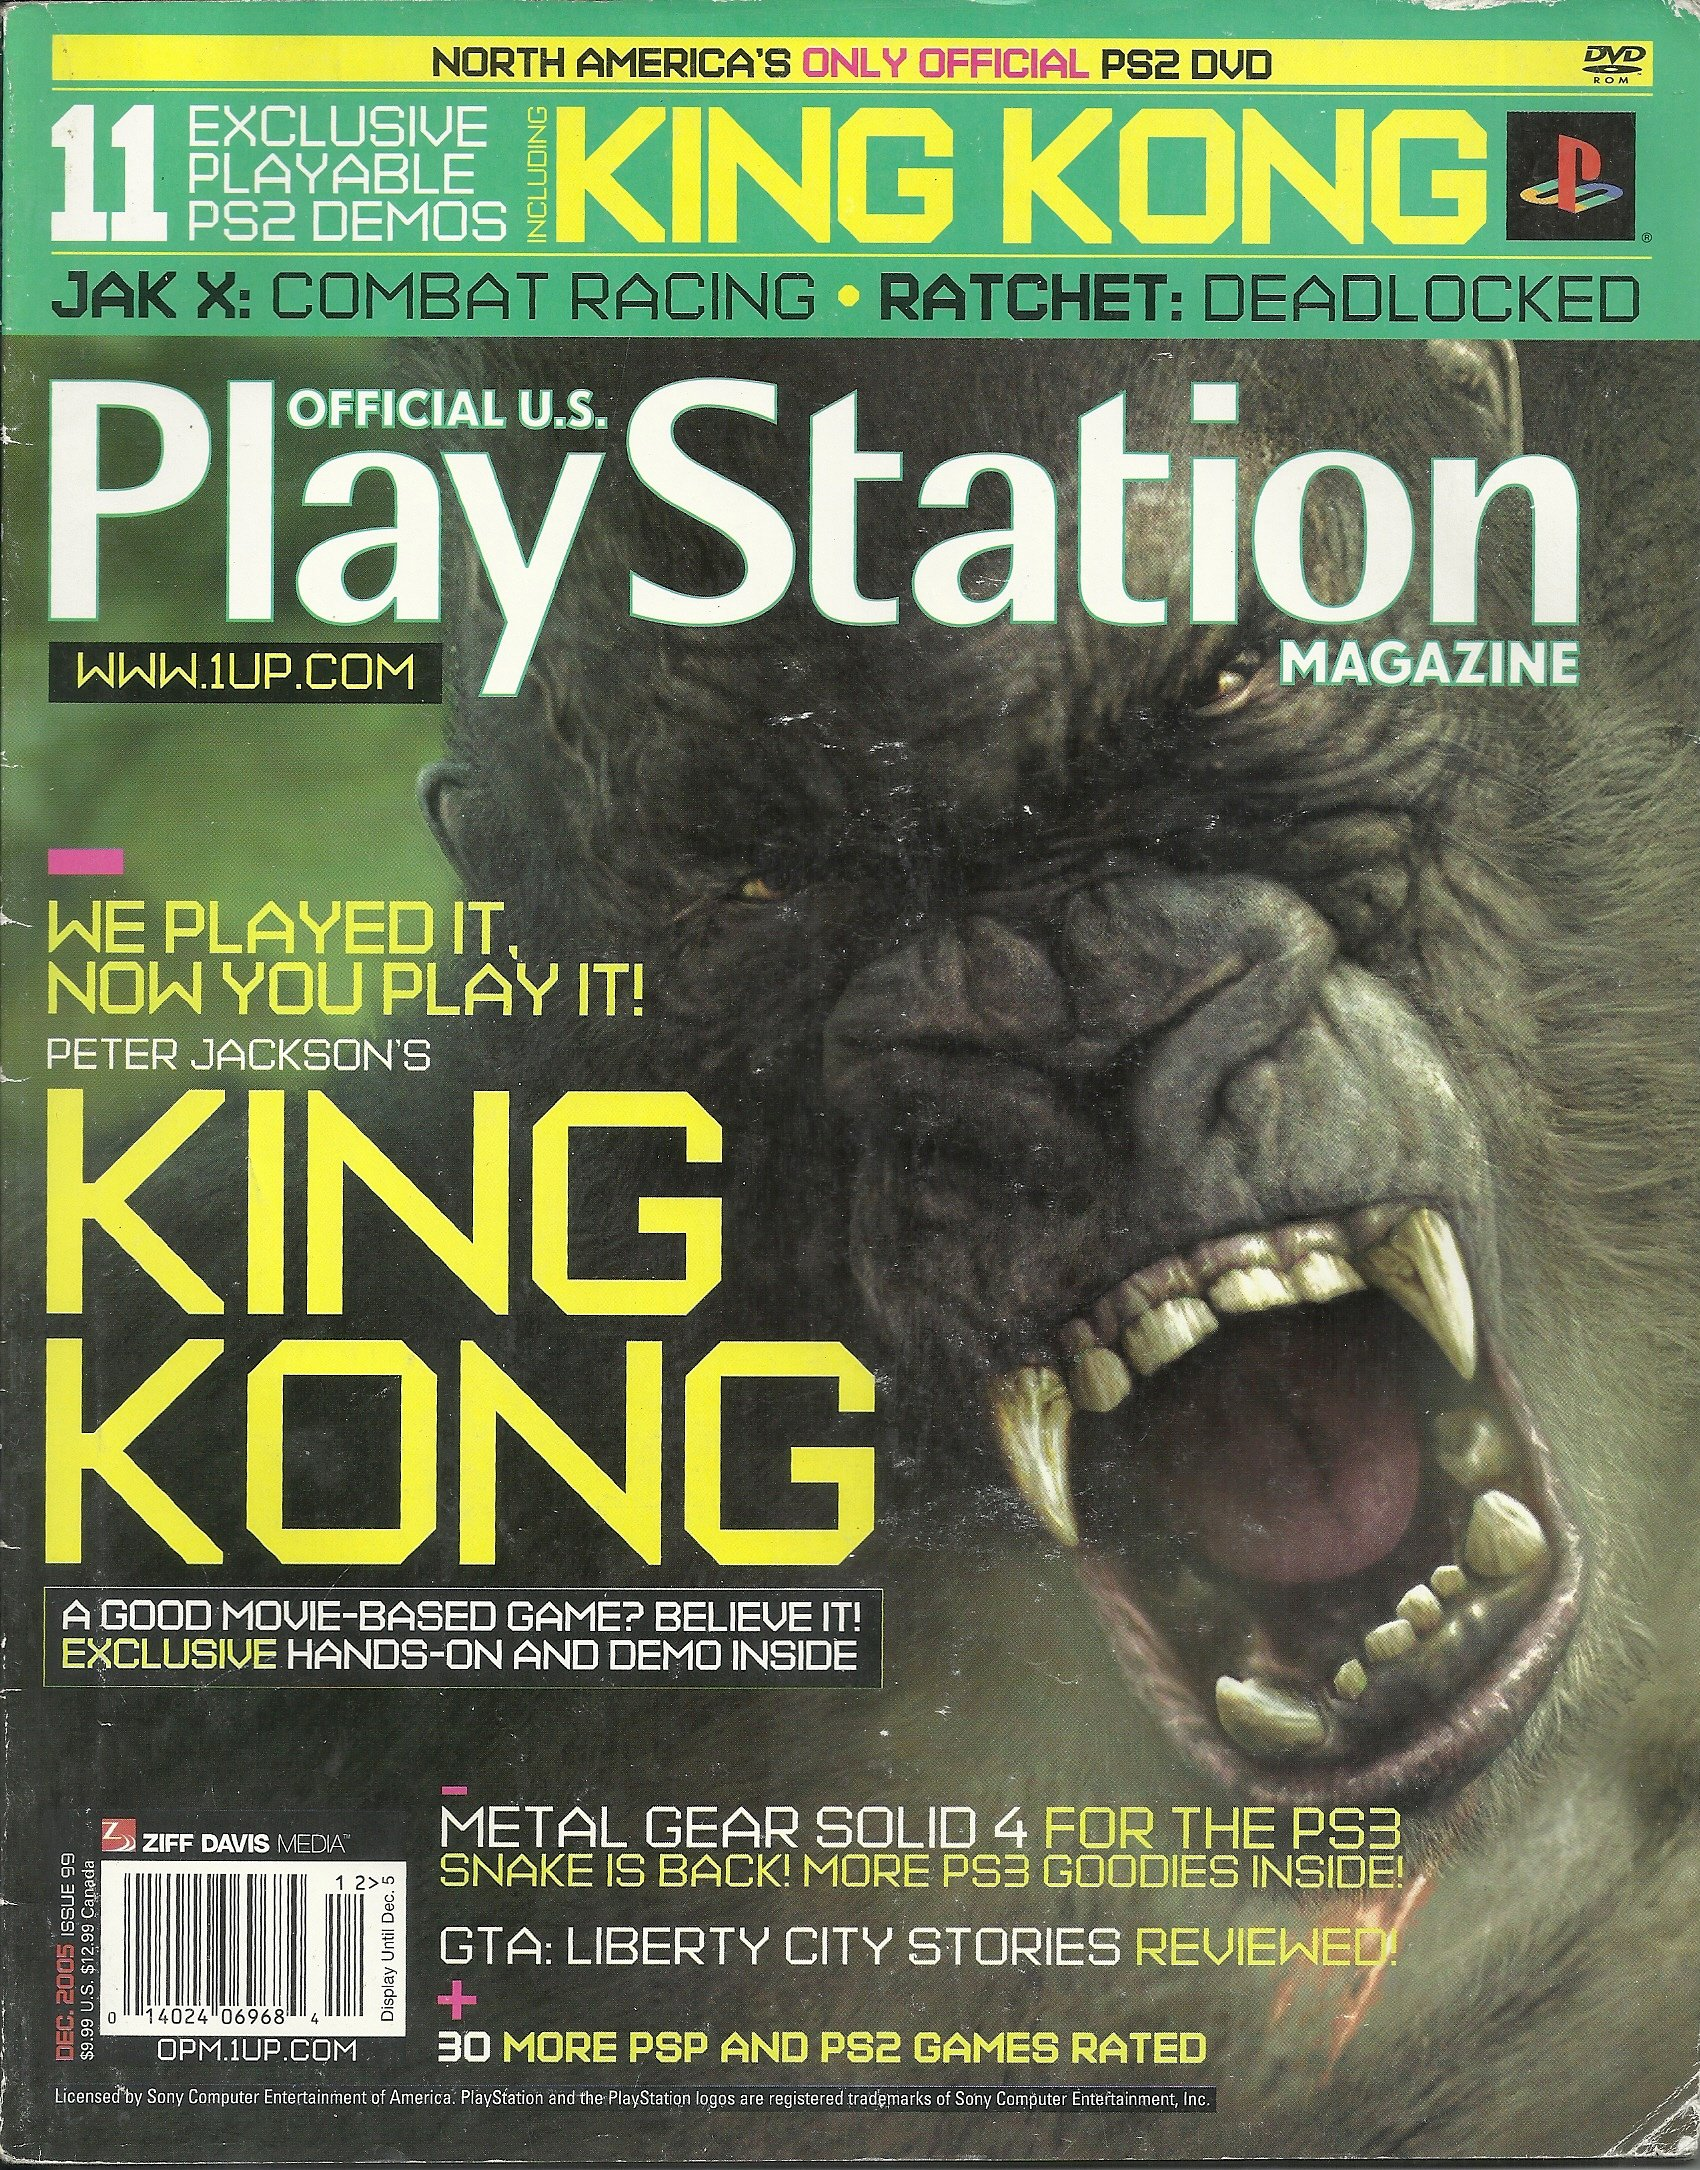 Official U.S. Playstation magazine Issue 099 (December 2005)